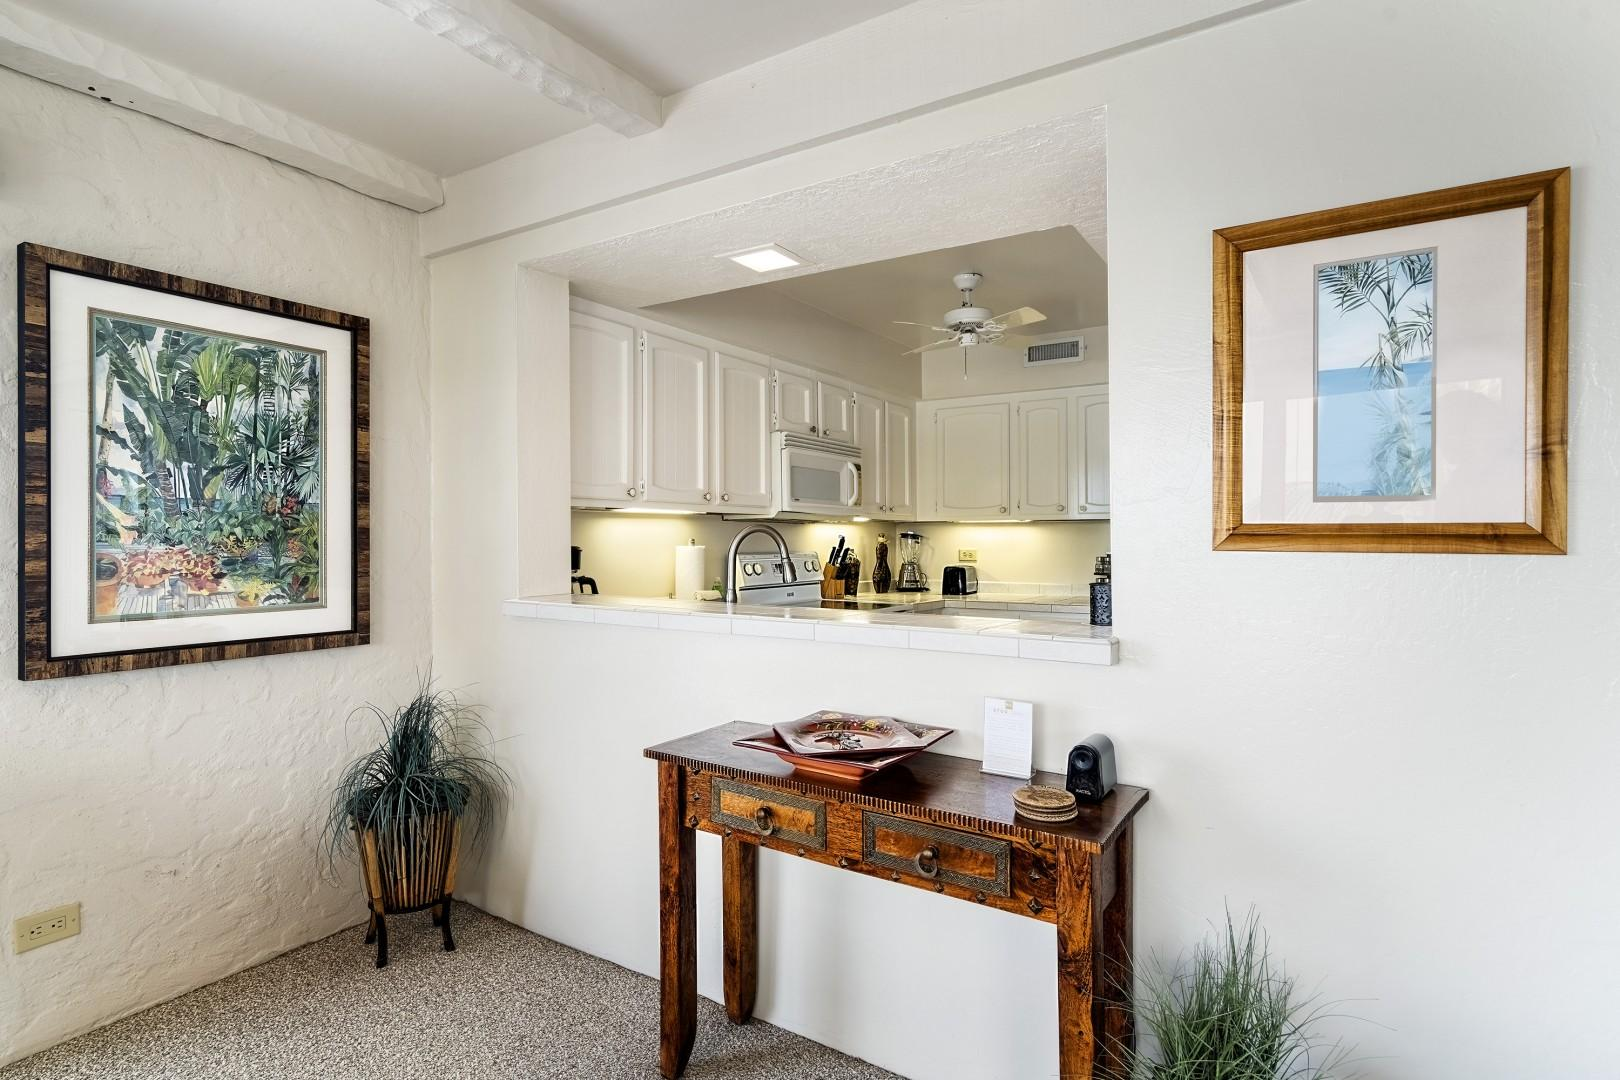 Kitchen passthrough, perfect for diners on the Lanai!